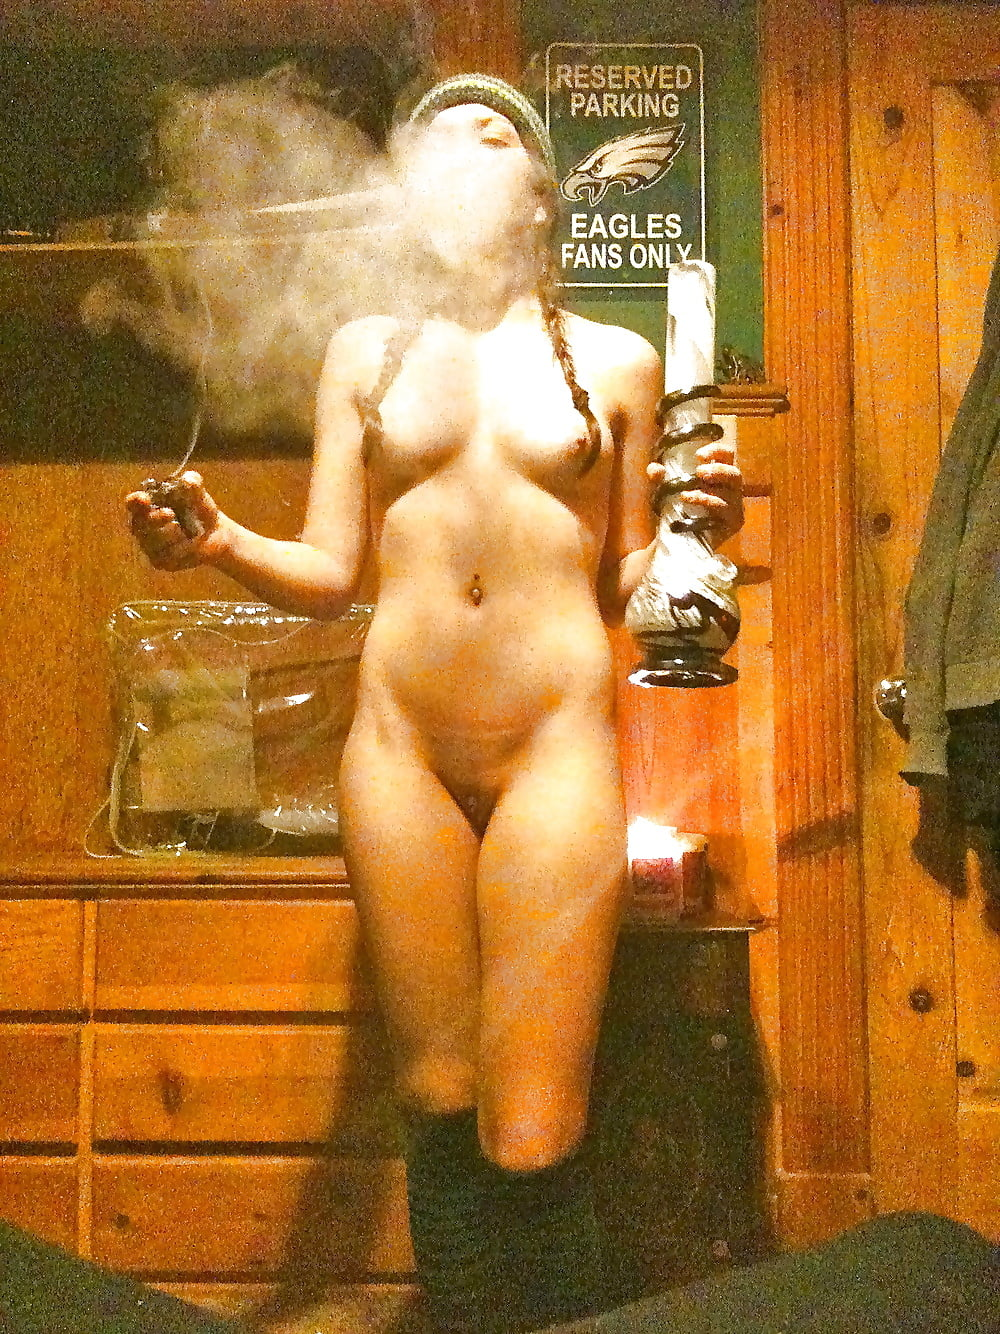 Smoking weed after a shower